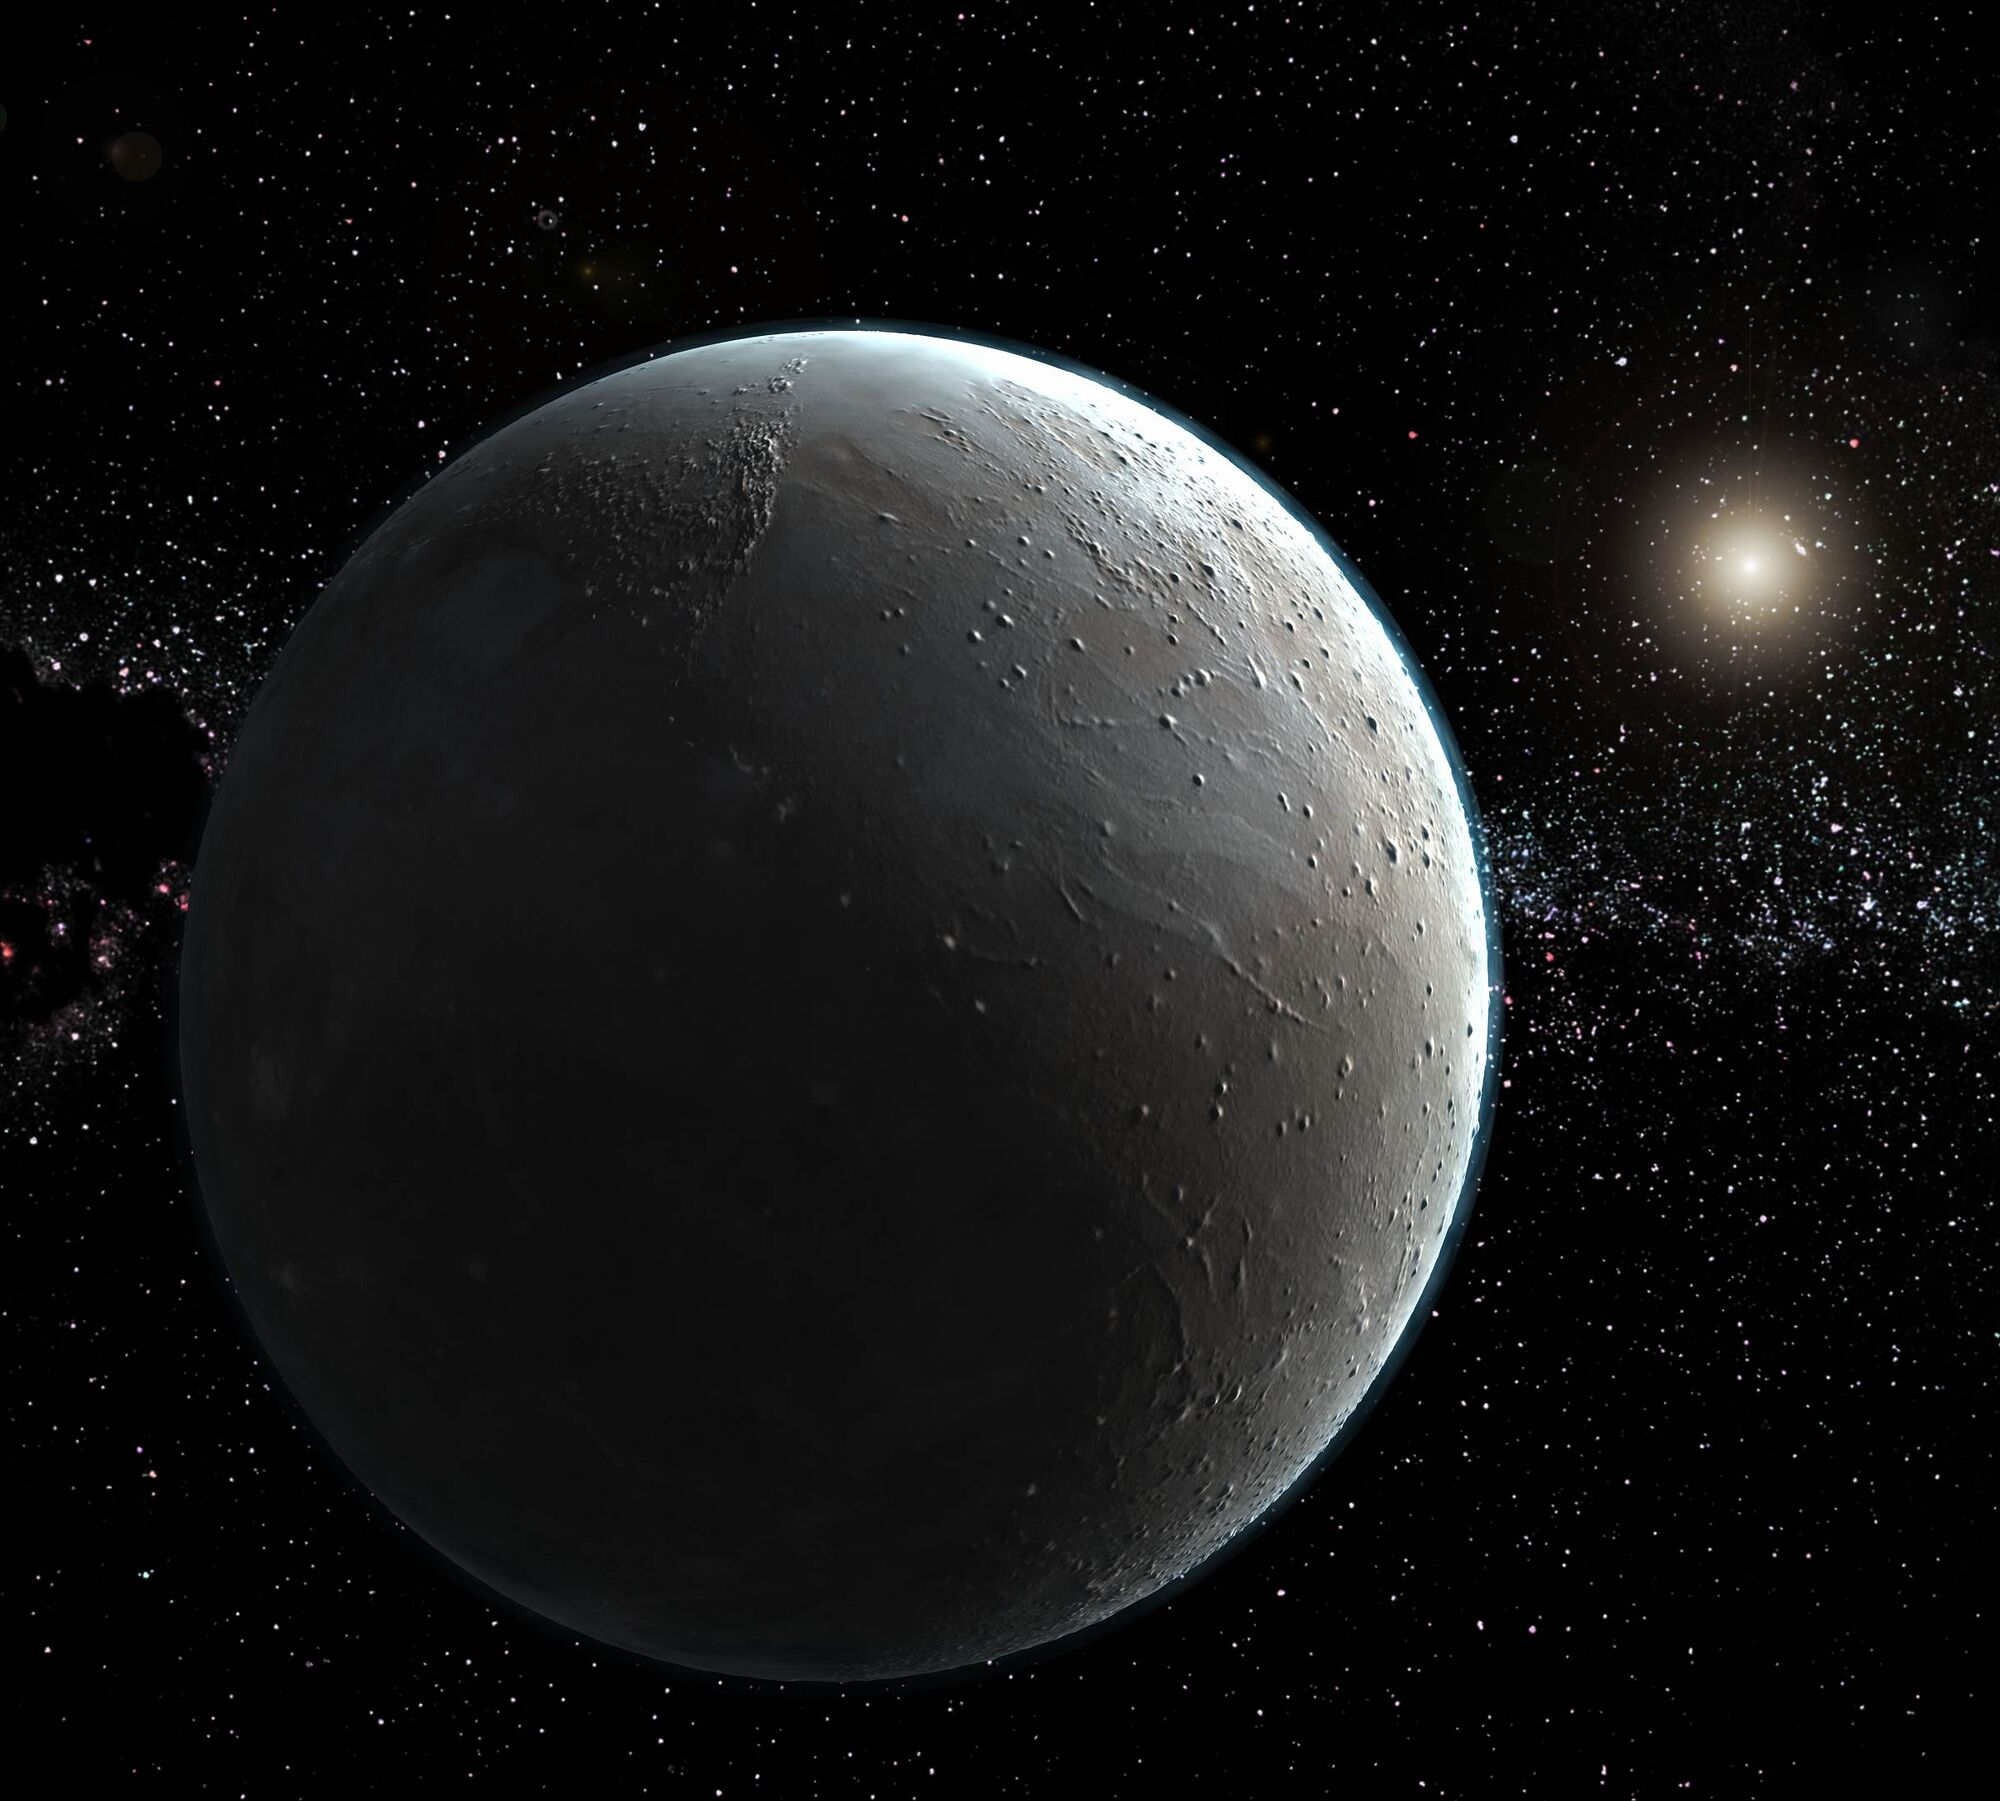 pluto planet images - 936×622